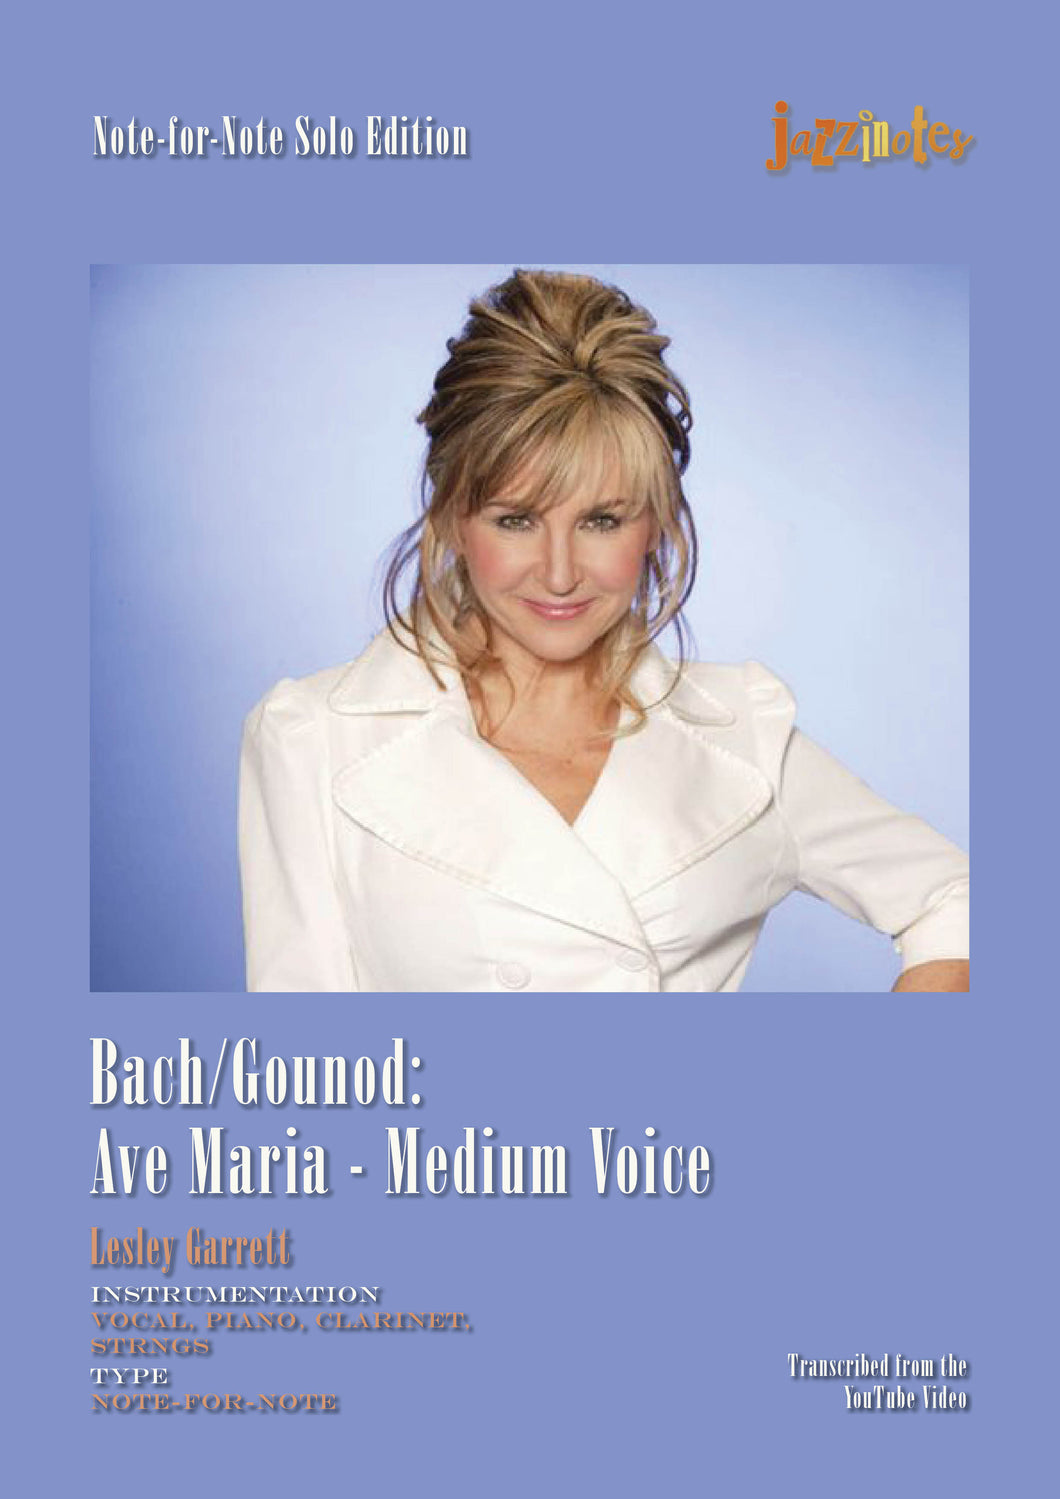 Bach/Gounod: Ave Maria (Lesley Garrett) - medium voice Eb major - Sheet Music Download